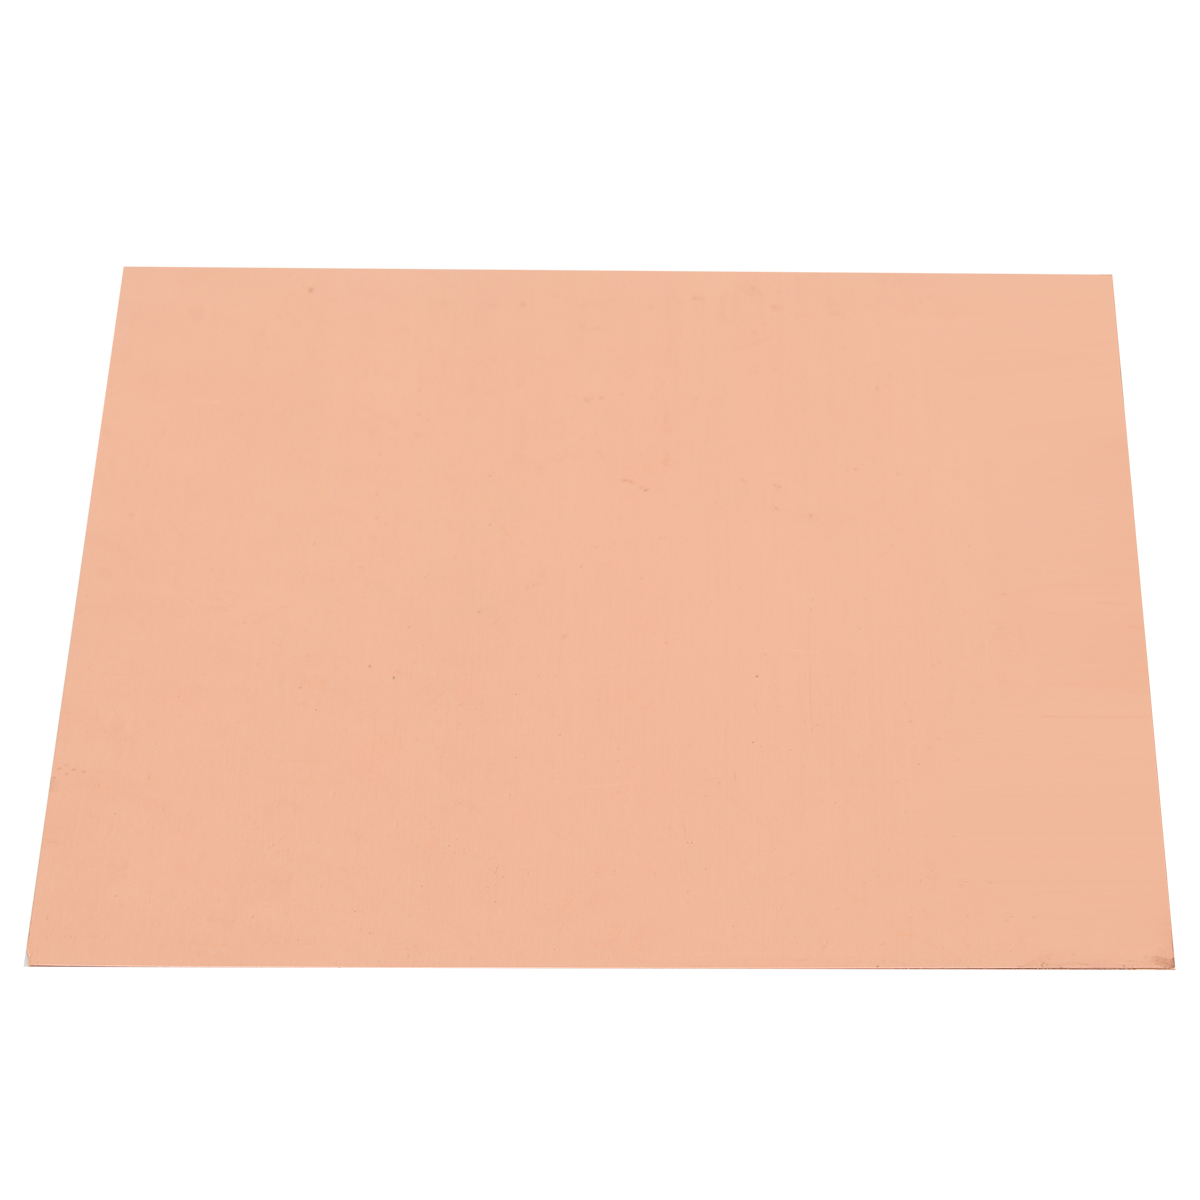 1pc 99.9% High Purity Copper Sheet Cu Metal Flat Foil Pure Copper Plate For Welding And Brazing 0.2*100*100mm